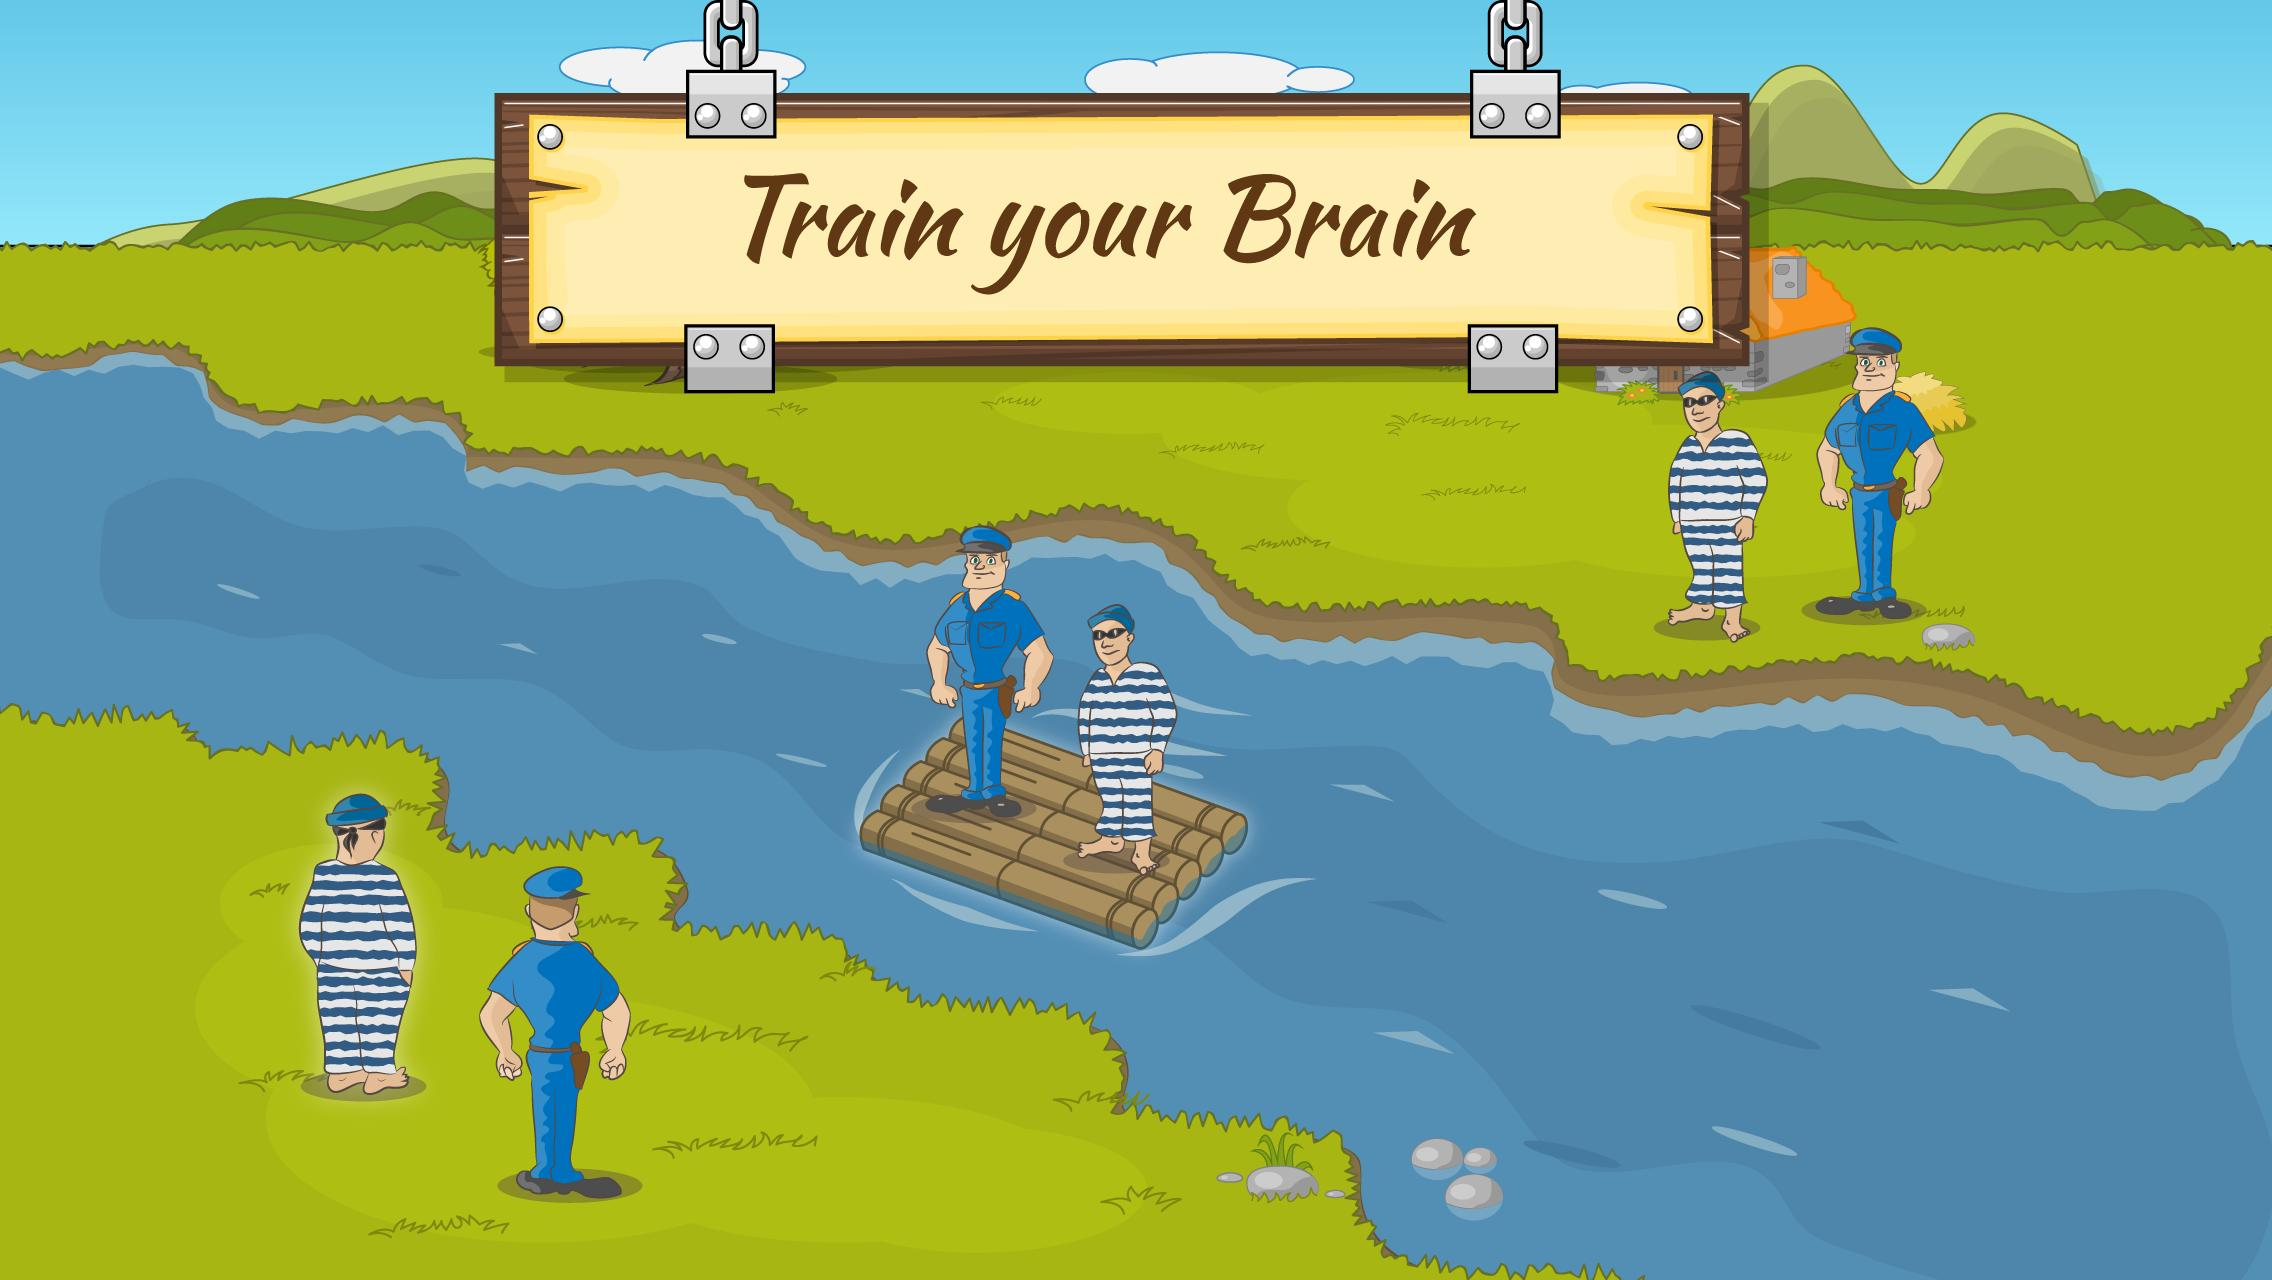 River Crossing IQ Logic Puzzles & Fun Brain Games 1.2.2 Screenshot 8